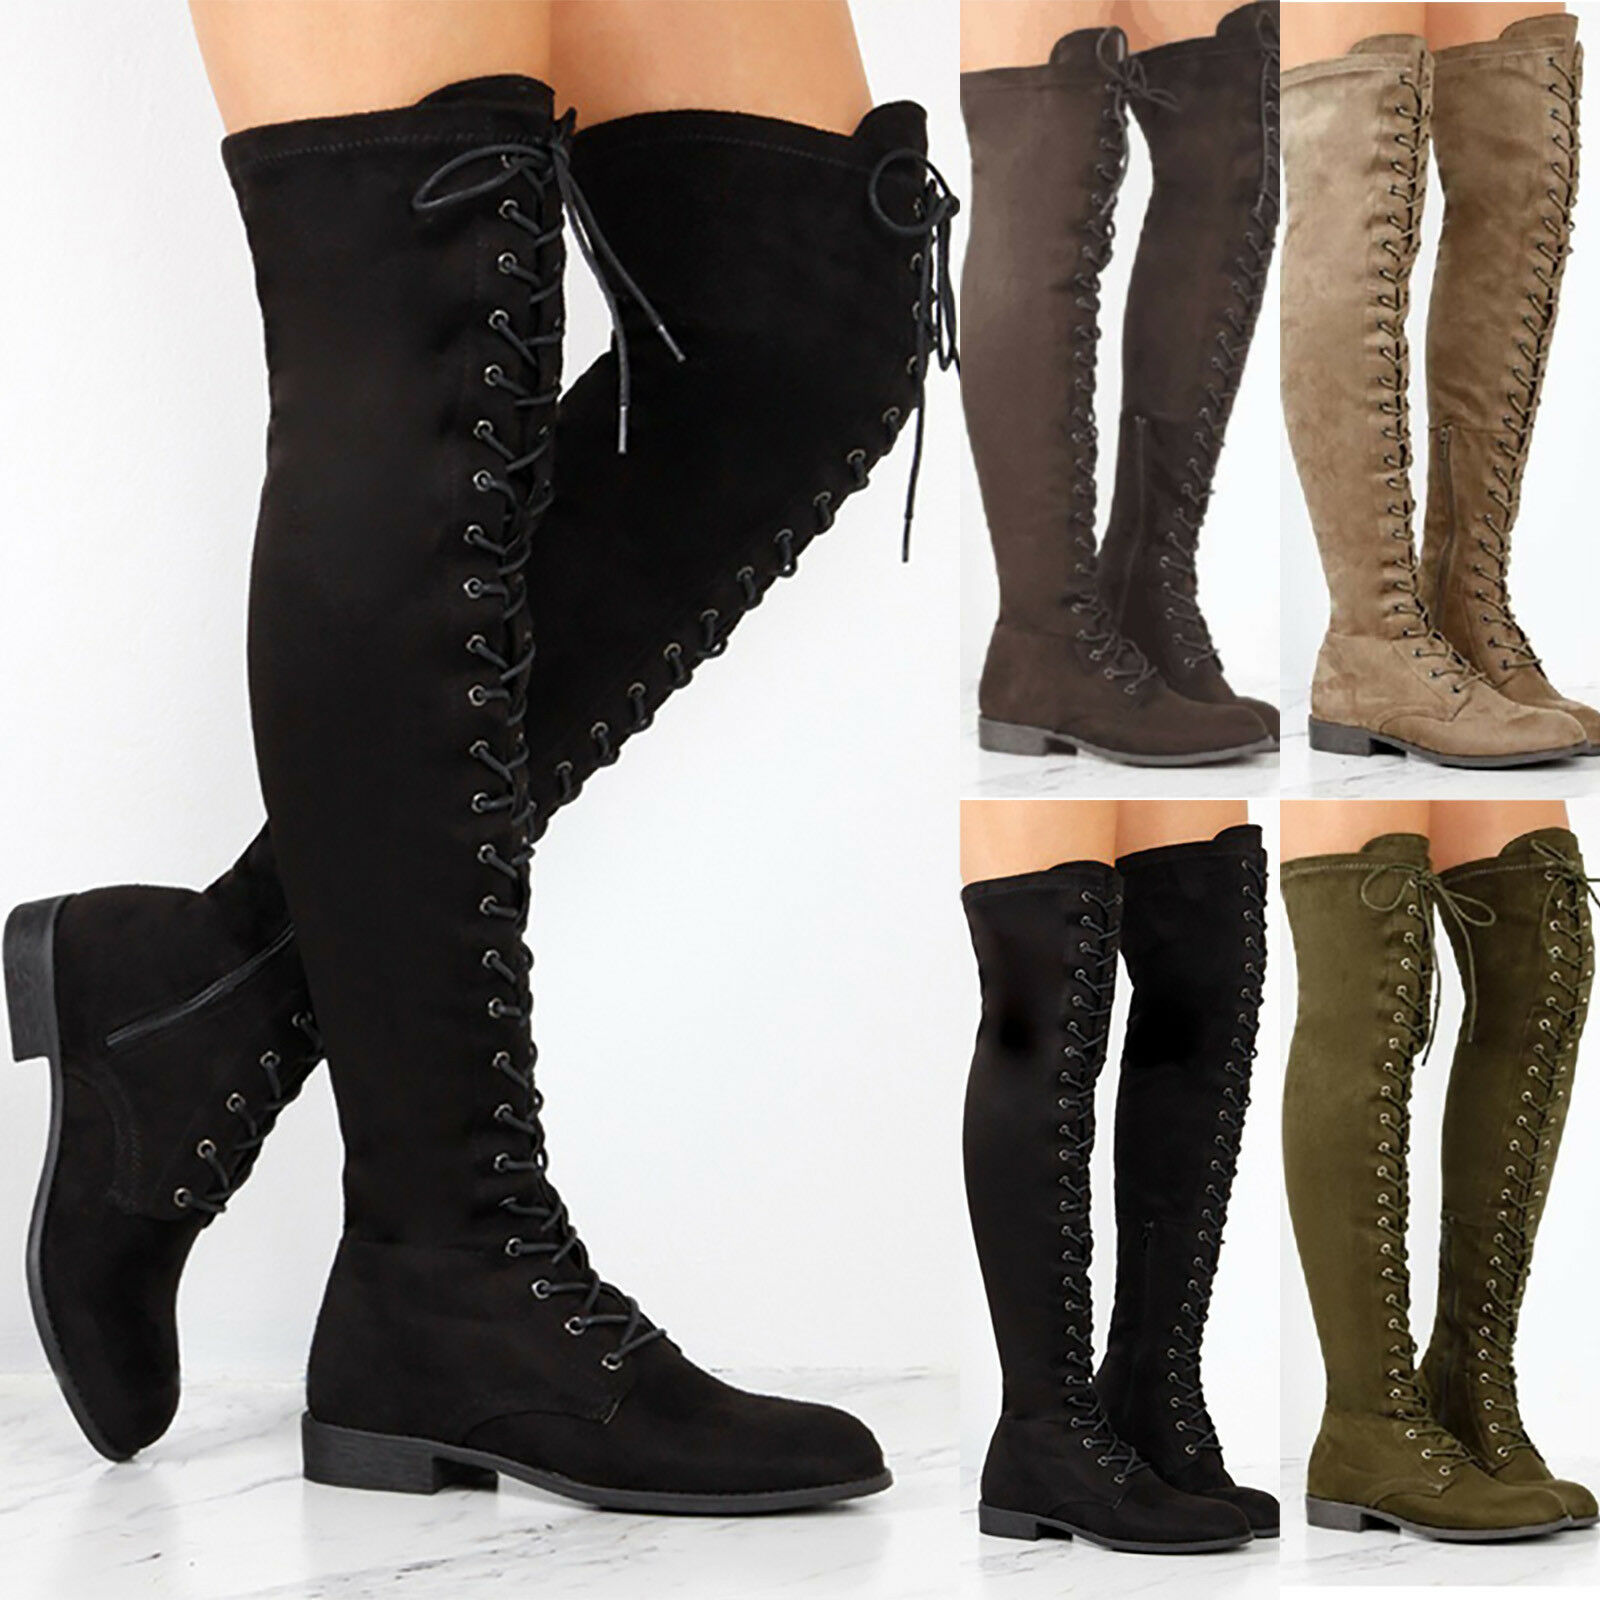 Women Lace Up Mid High Heel Riding Long Boots Ladies Suede Tall OTK Shoes Winter